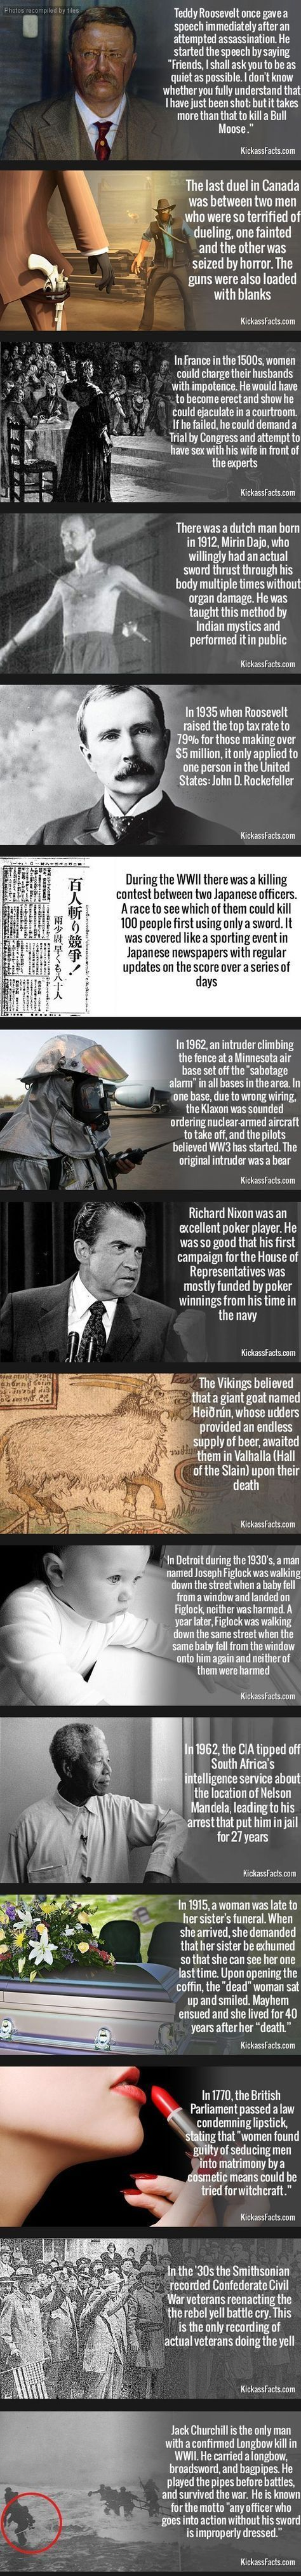 Strange history facts // funny pictures - funny photos - funny images - funny pics - funny quotes - #lol #humor #funnypictures